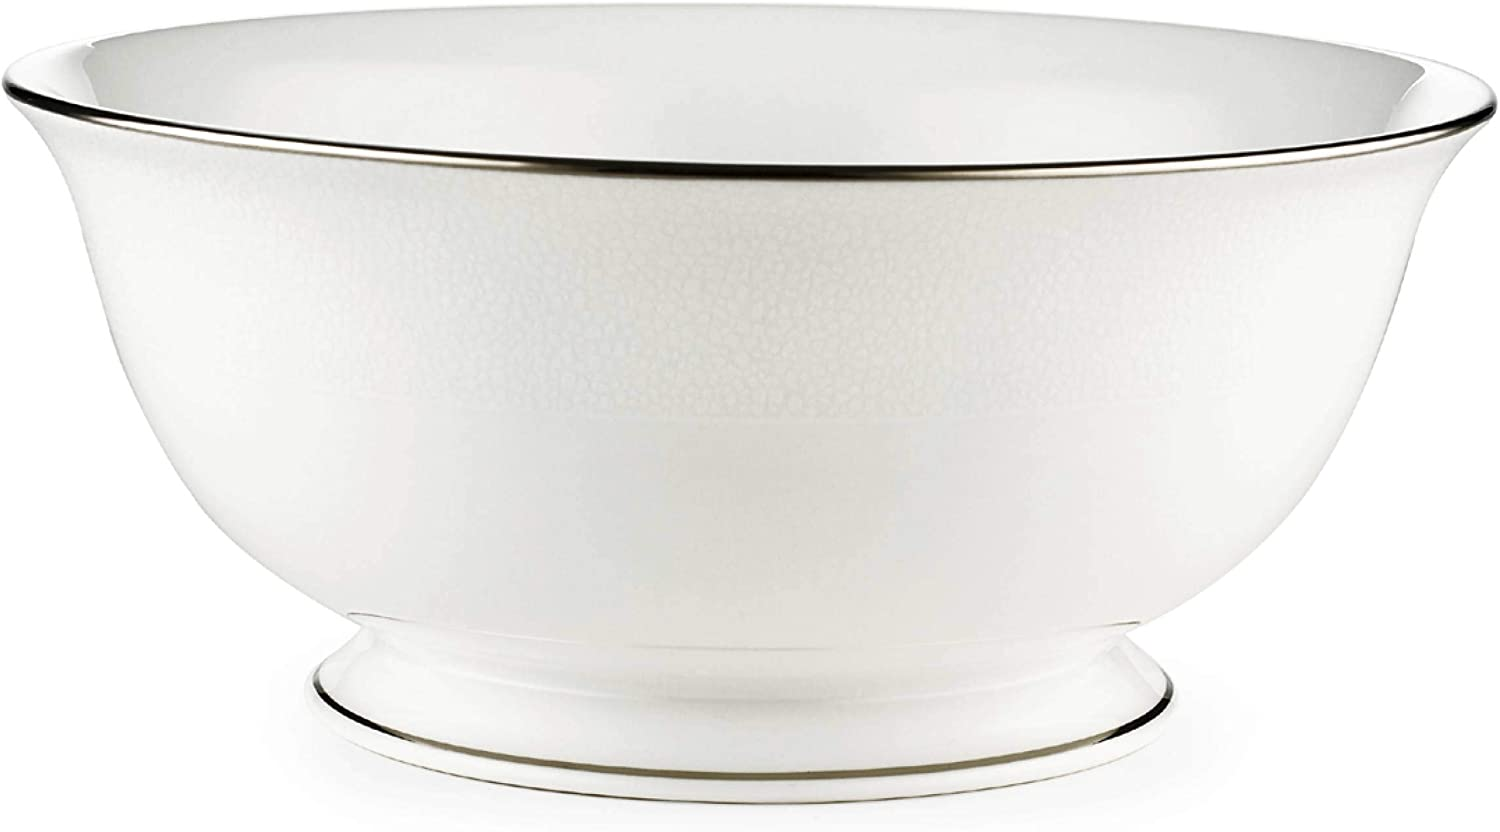 Kate Spade Cypress Point All Purpose Bowl 0 70 Lb White Kitchen Products Kitchen Dining